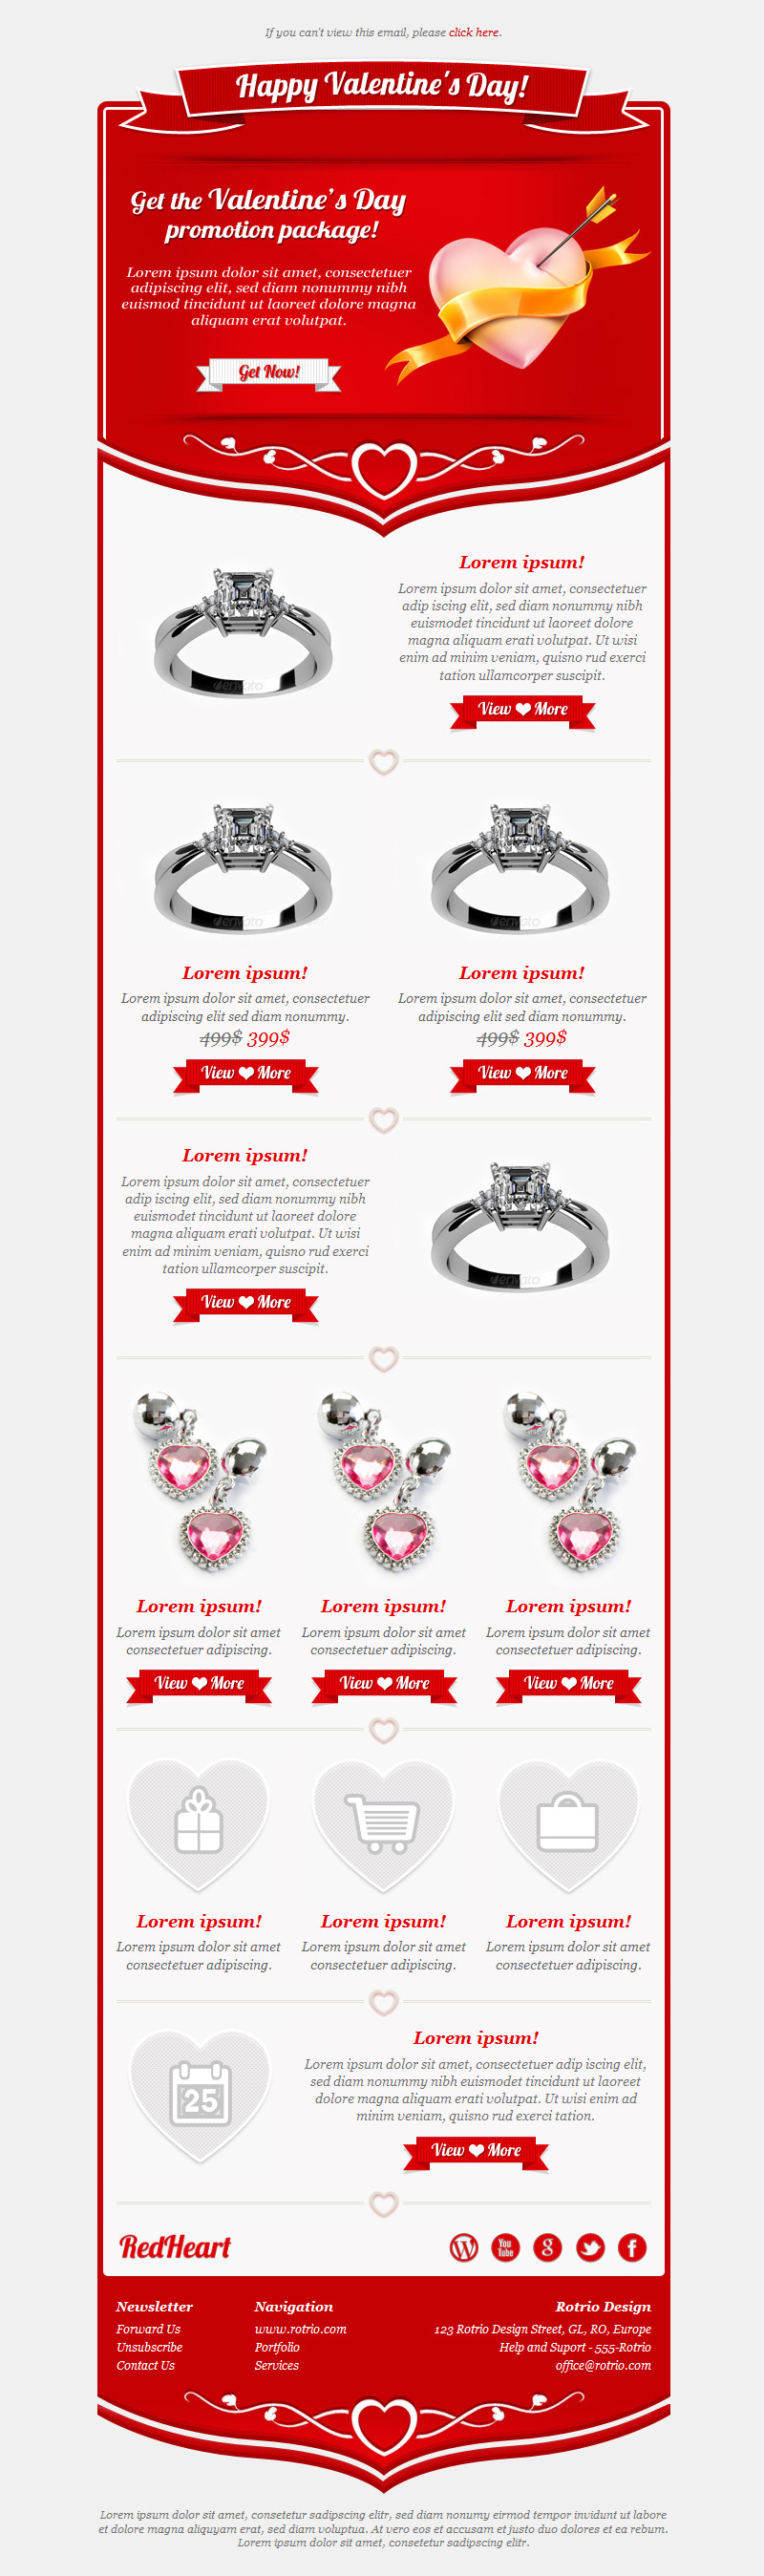 Valentines Day - Email Templates